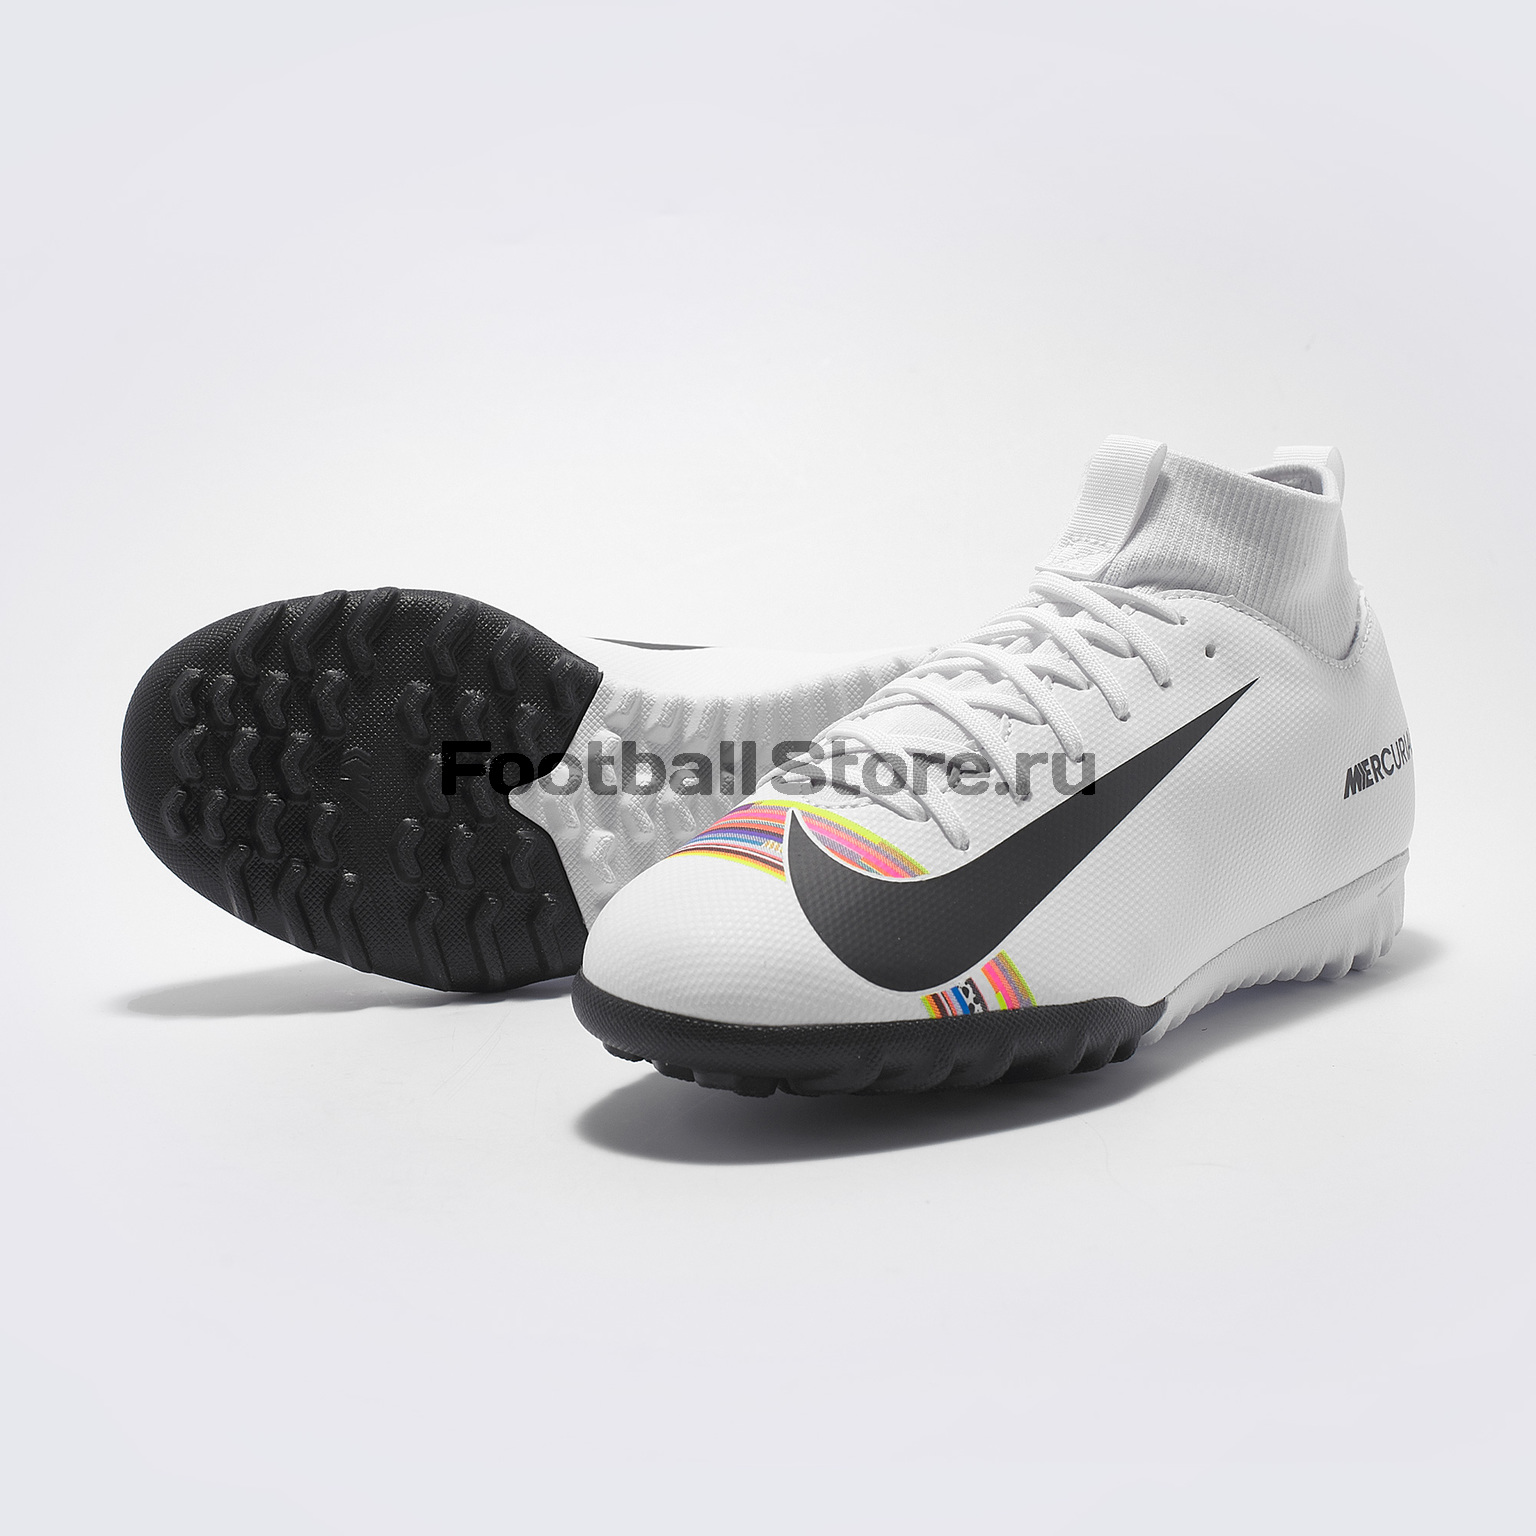 Шиповки детские Nike Superfly 6 Academy CR7 GS TF AJ3112-109 бутсы nike шиповки nike jr tiempox legend vi tf 819191 018